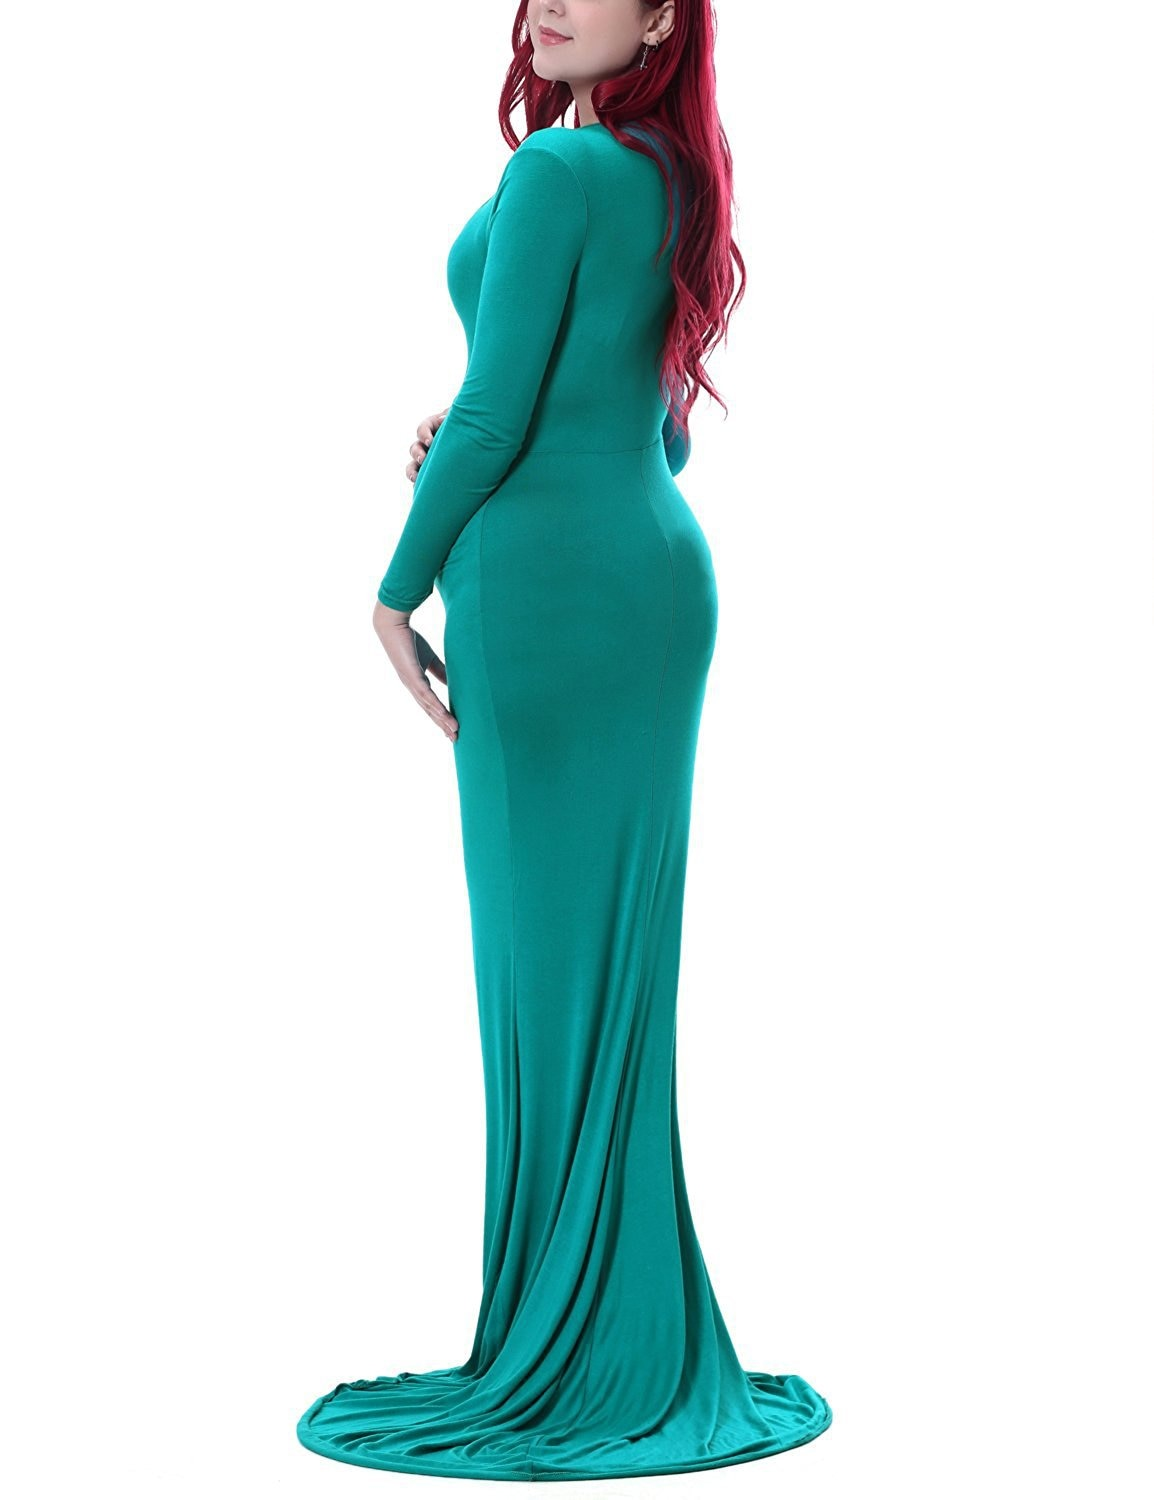 New Maternity Dresses for Photo Shoot Elasticity Maternity Photography Props Pregnancy Dress Maxi Dresses Gown Pregnant Clothes enlarge